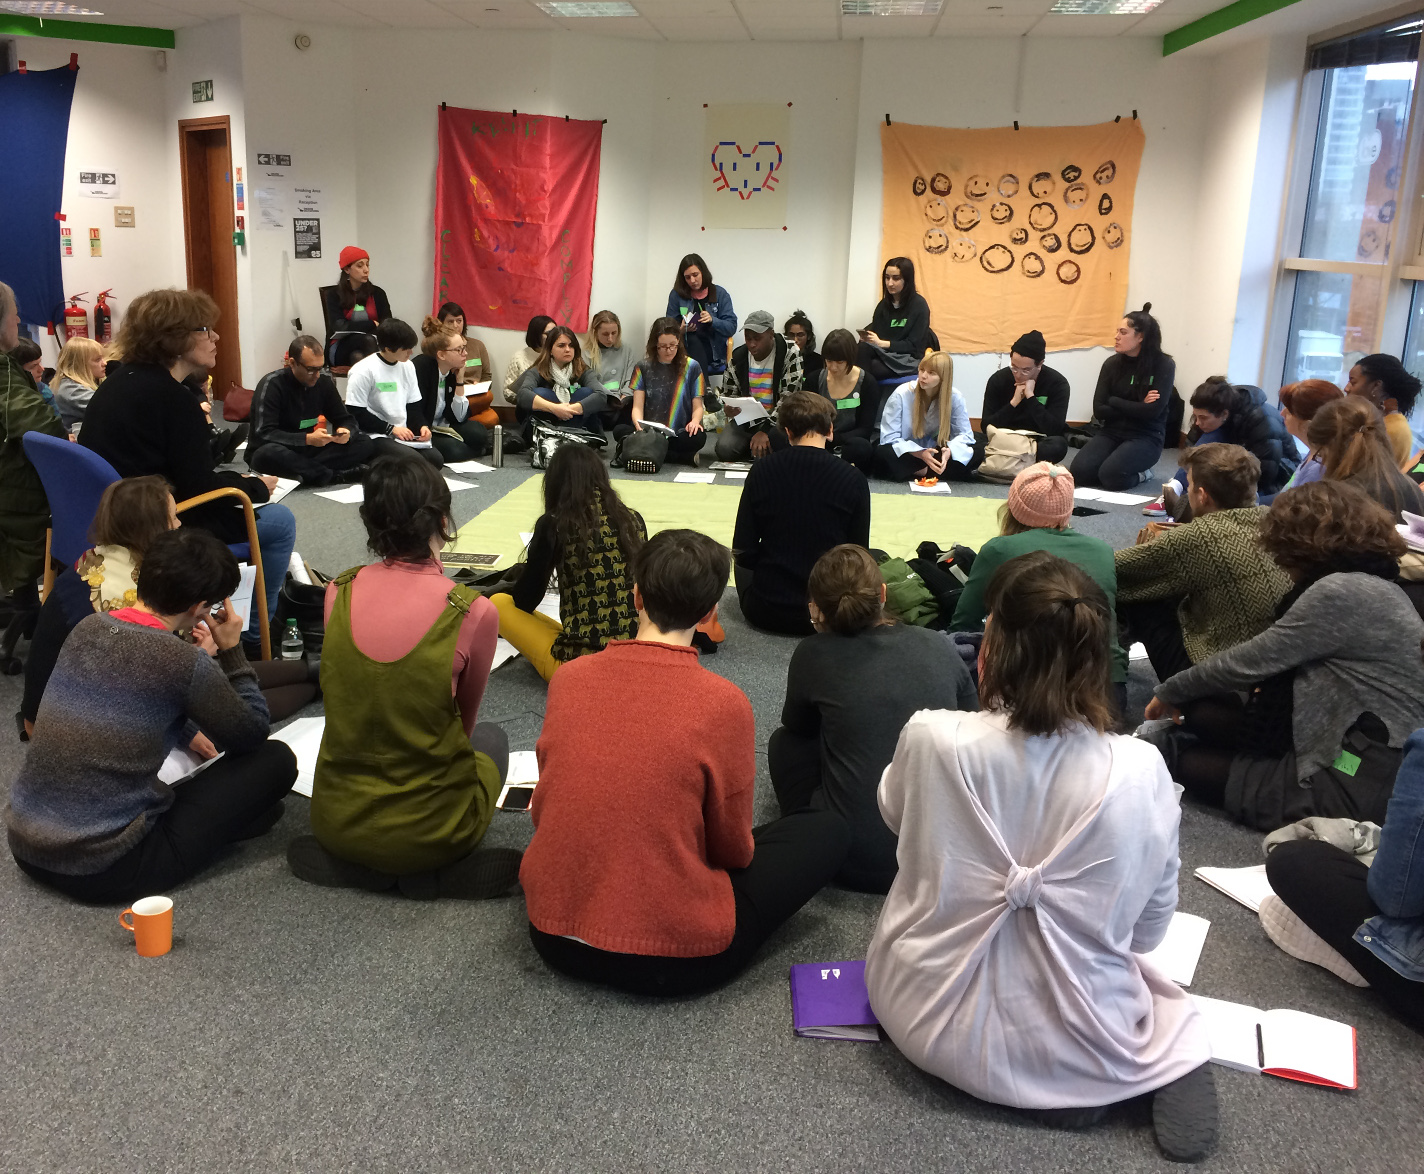 Keep it Complex – Make it Clear, Unite Against Dividers, a weekend of workshops, debates, questions and networking to equip and activate the arts community after the UK's EU Referendum, January 2017.